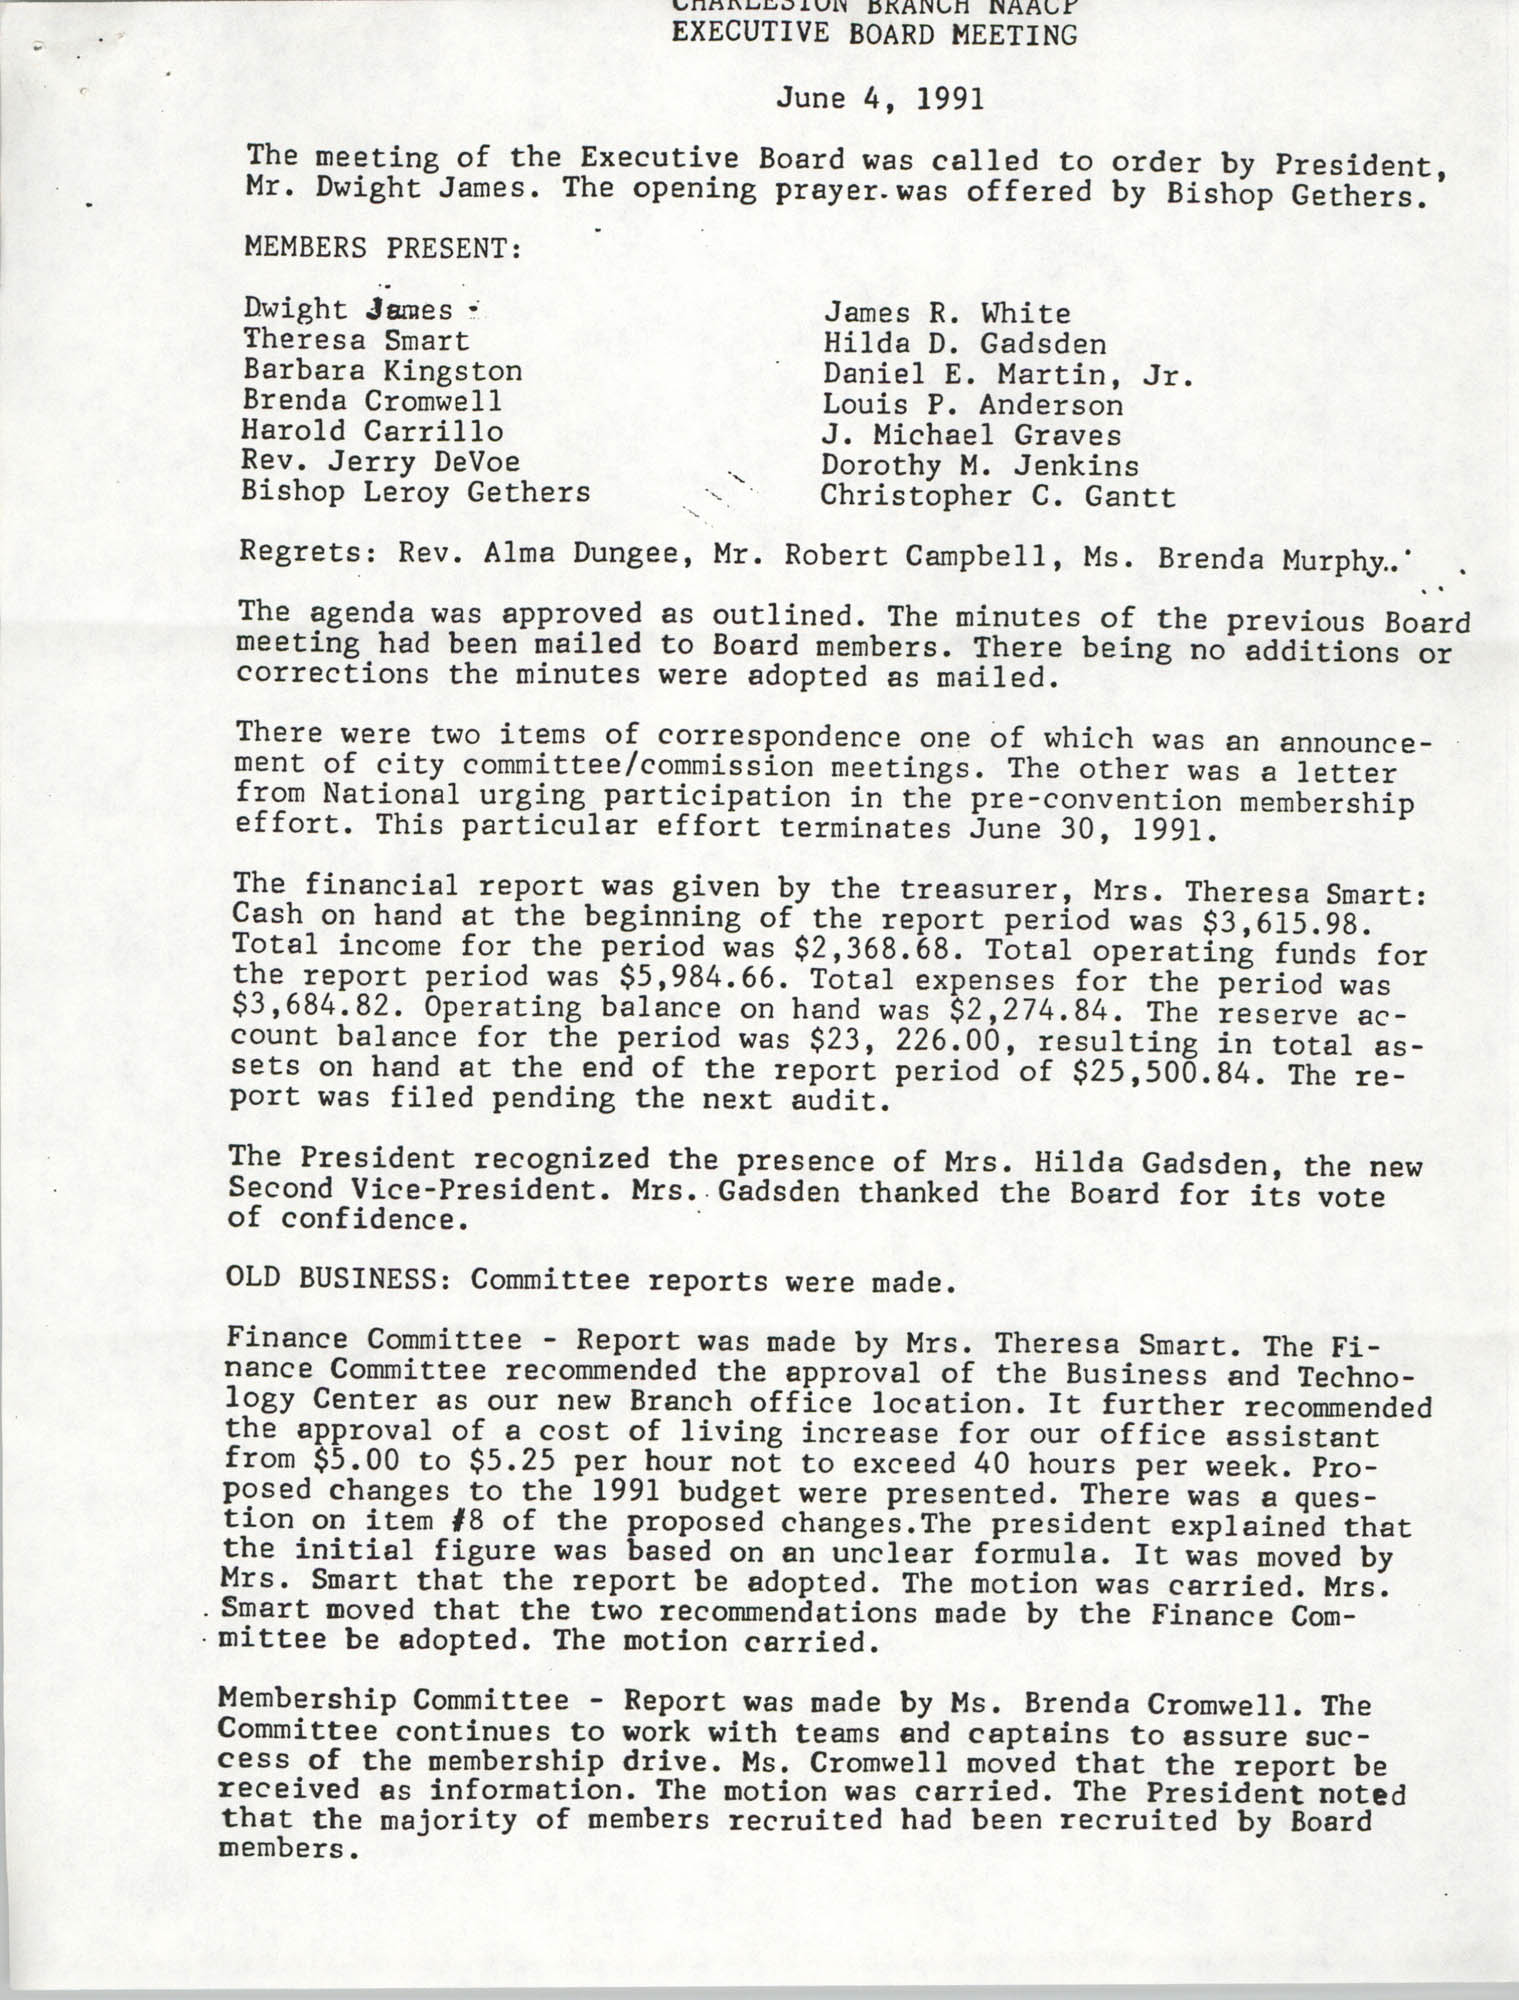 Minutes, Charleston Branch of the NAACP Executive Board Meeting, June 4, 1991